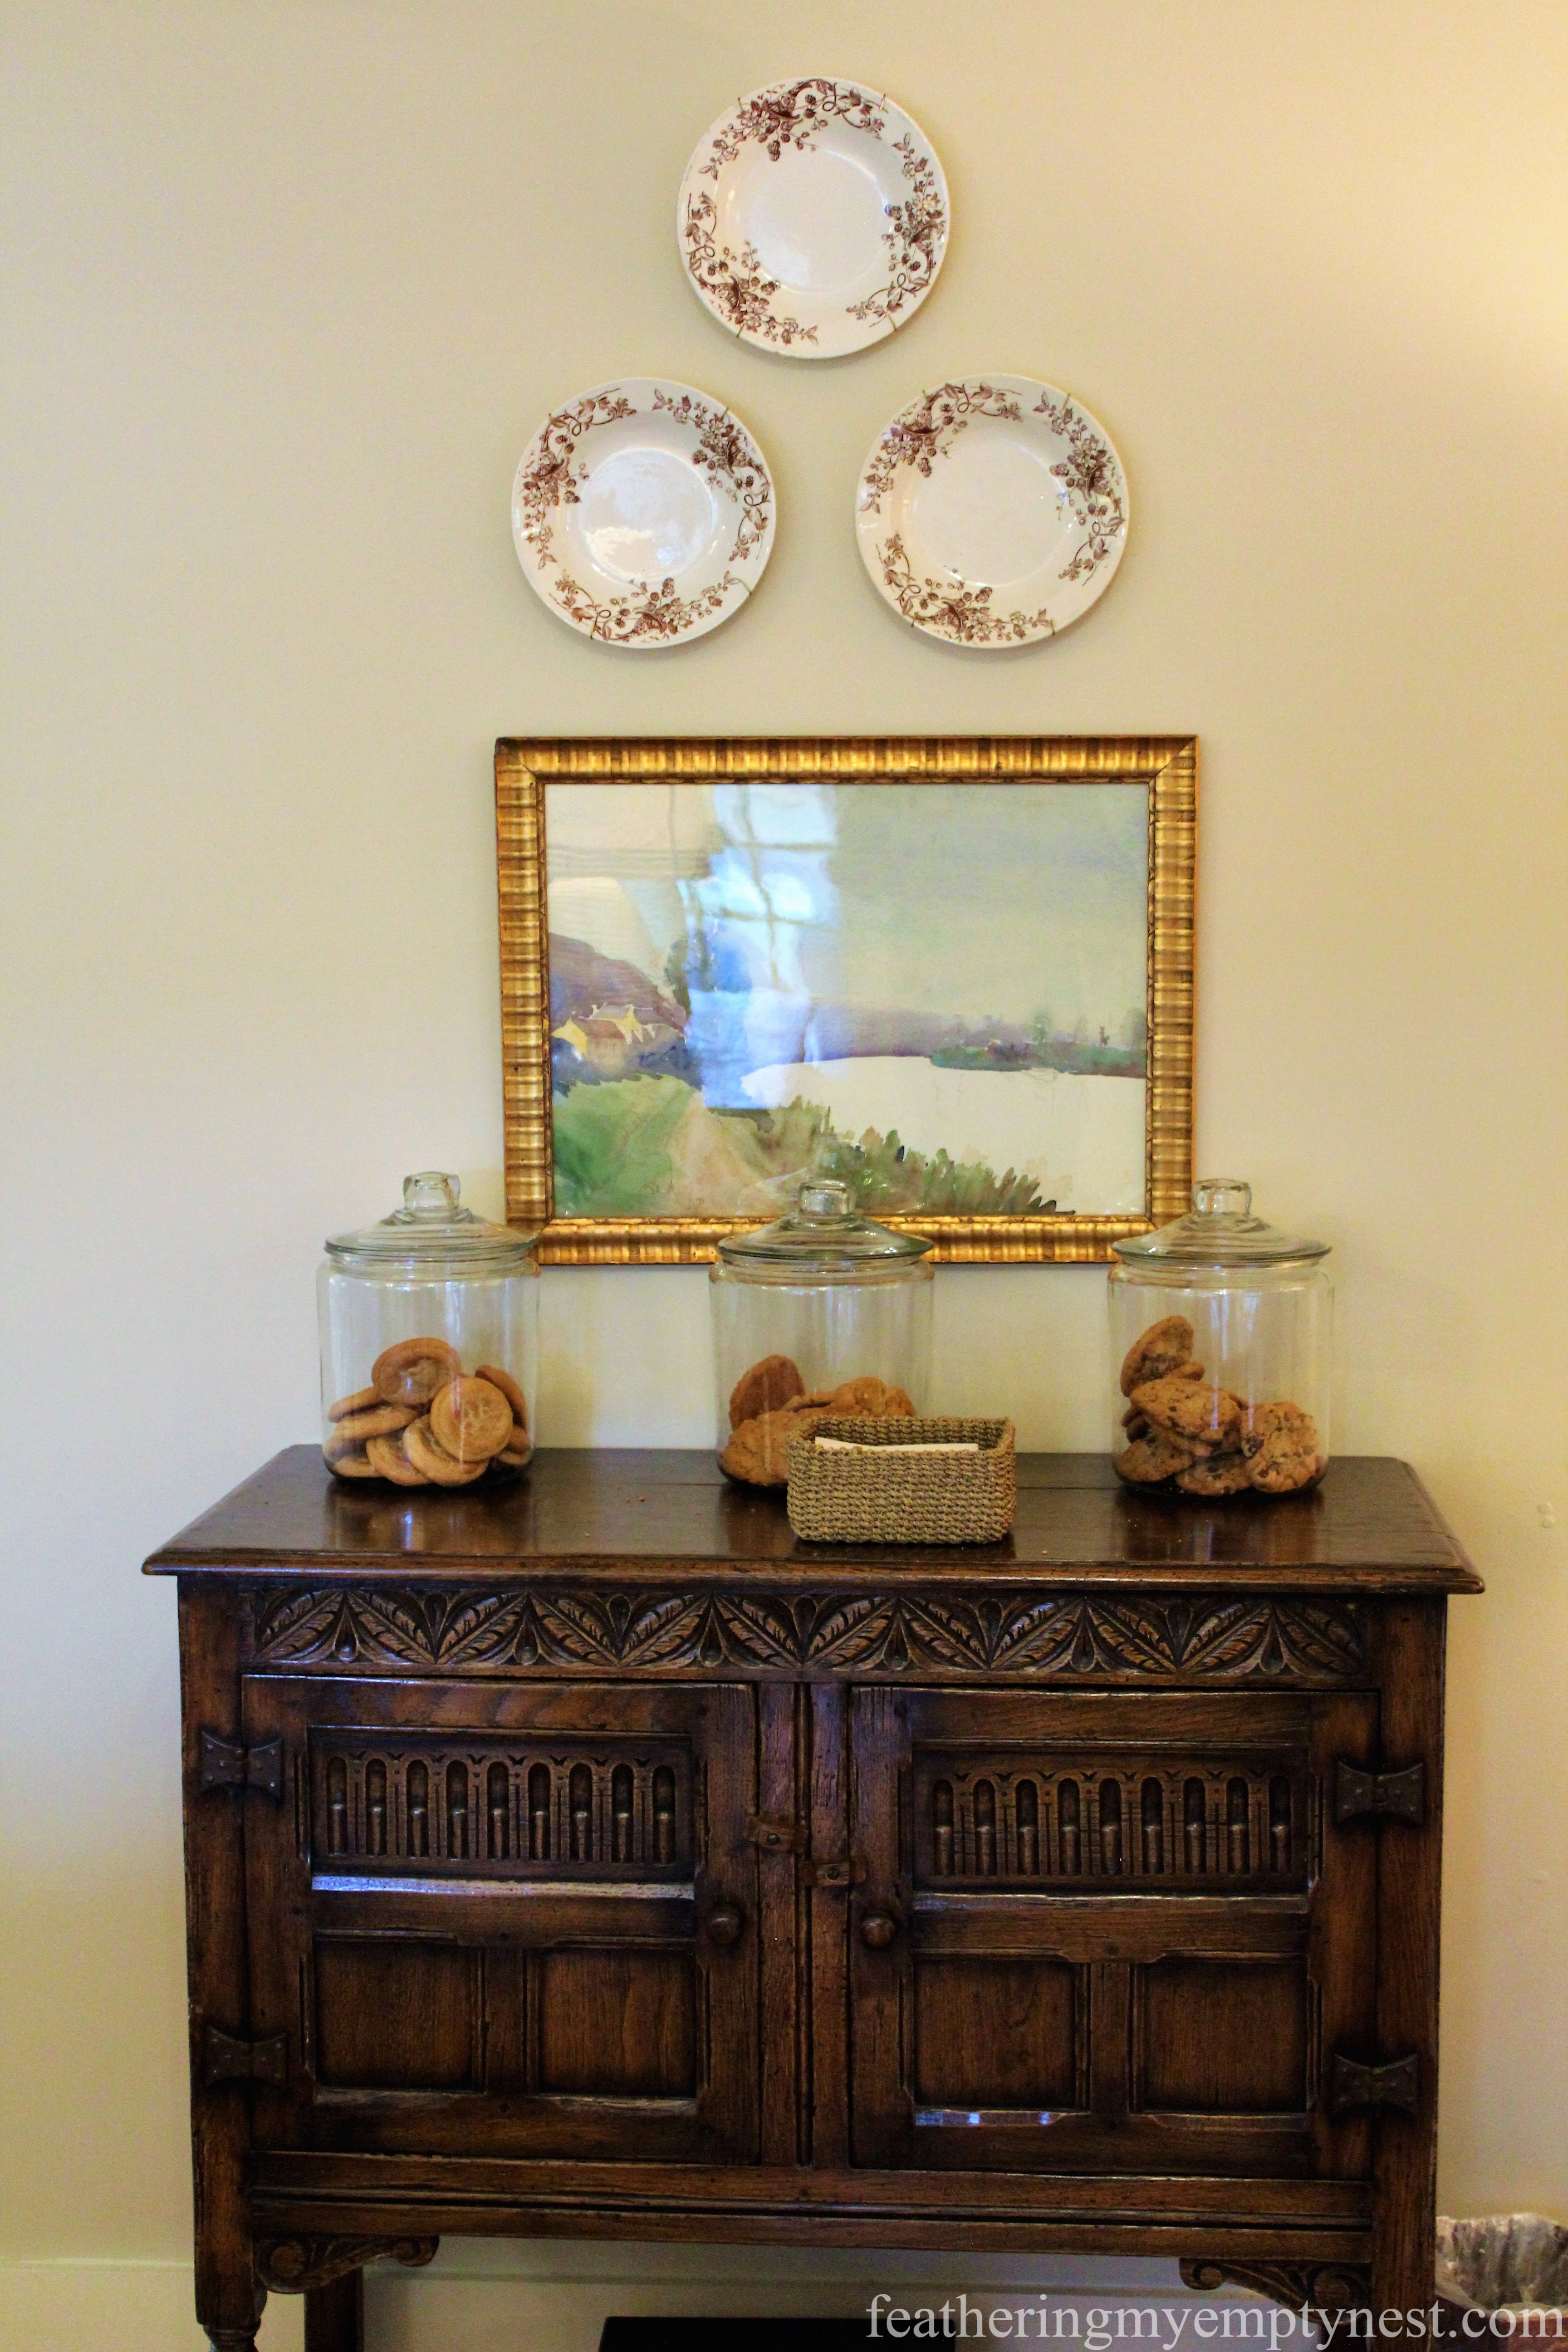 An artful and delicious display of complimentary cookies in the sitting room --Elegant And Colorful Farmhouse Style